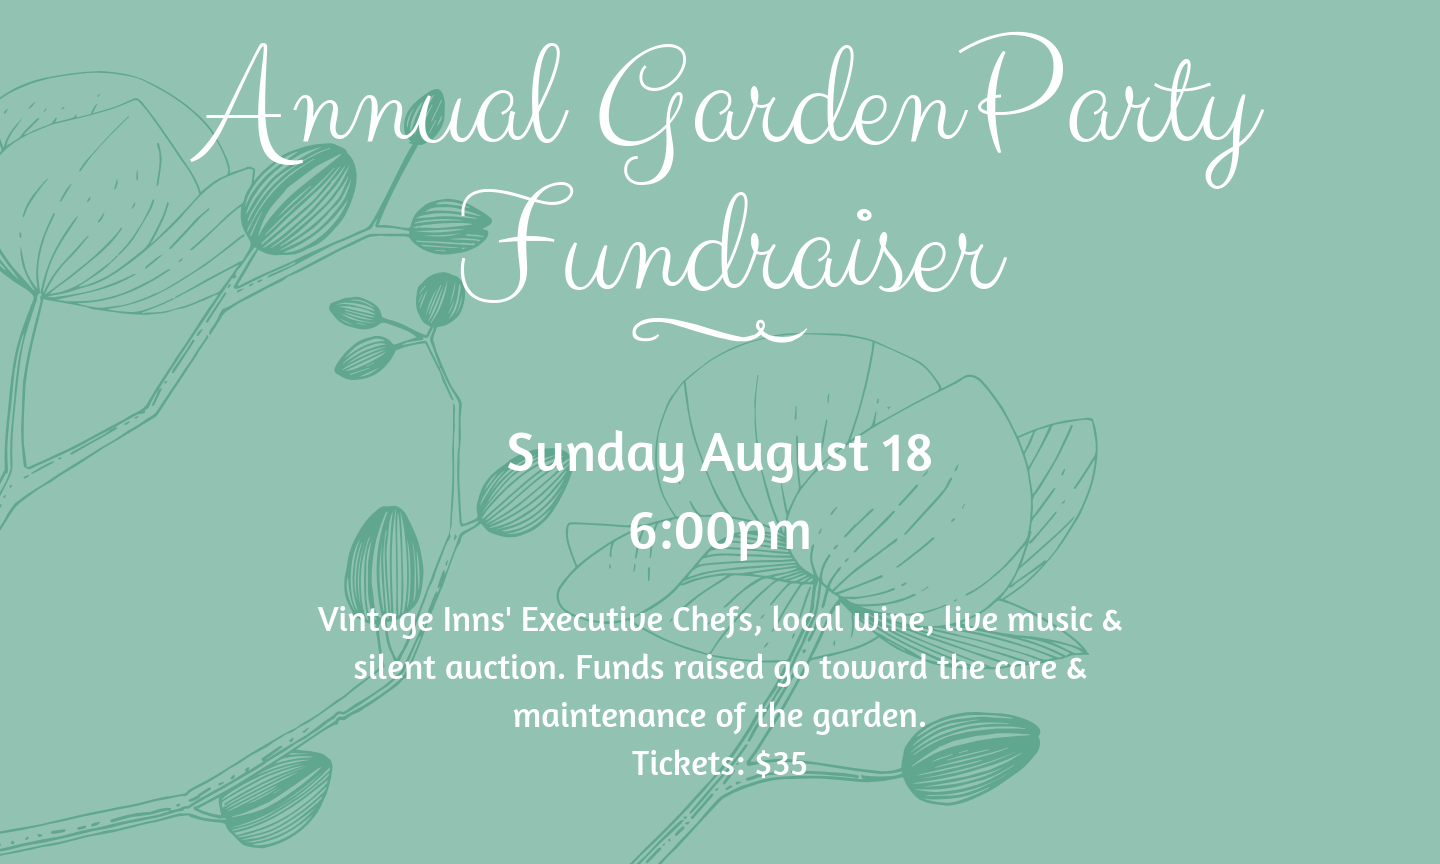 Garden Party Fundraiser Sunday August 18 6pm. click to register